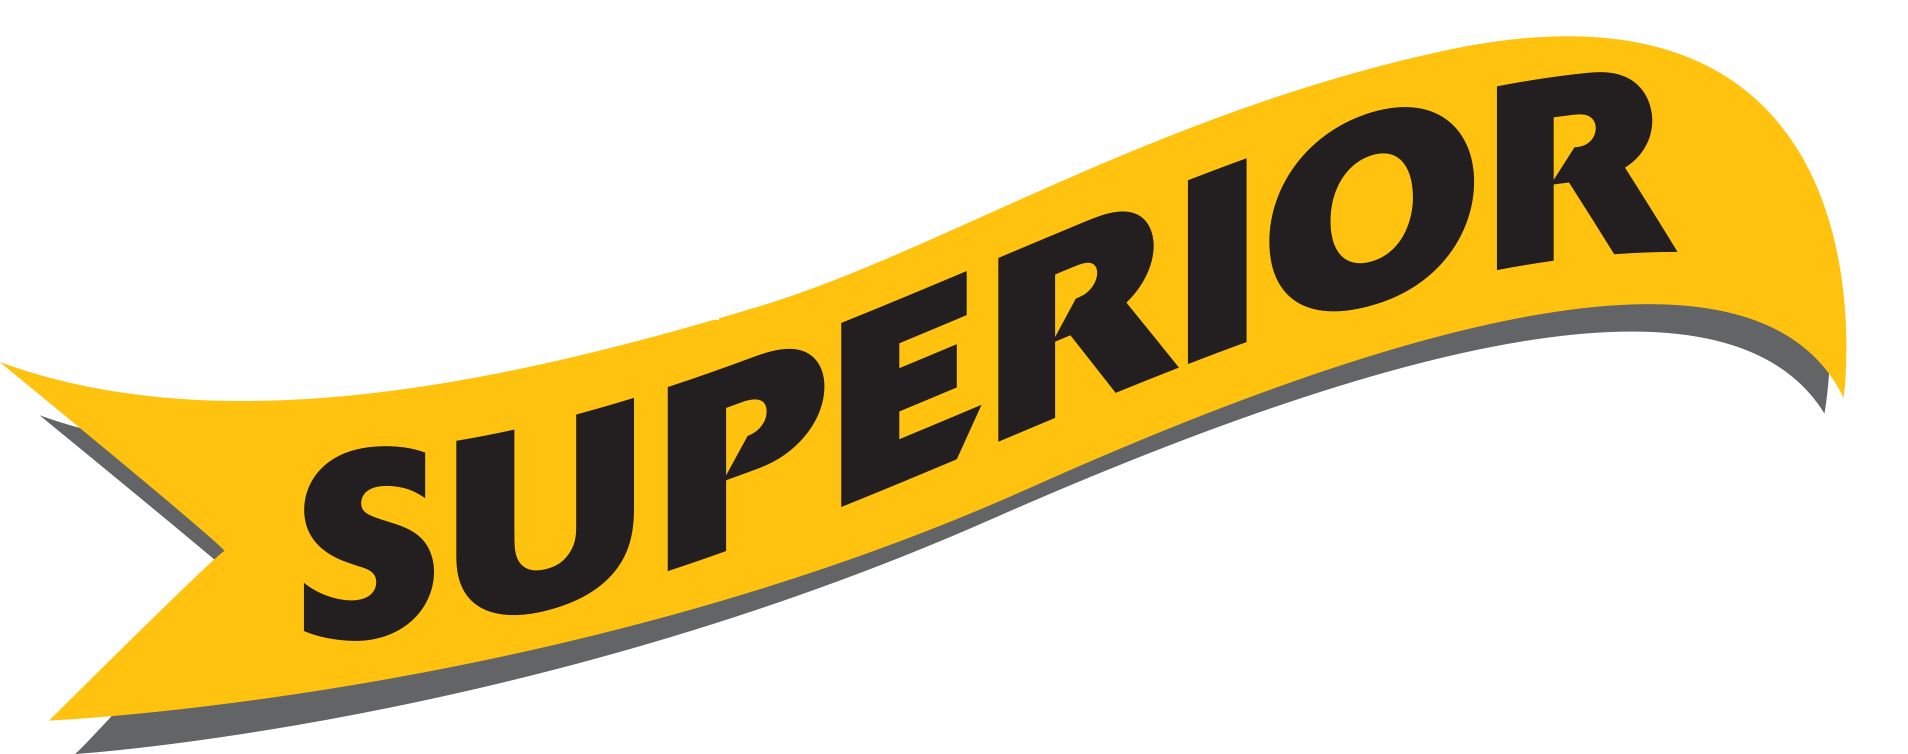 Superior Mechanical Services footer logo